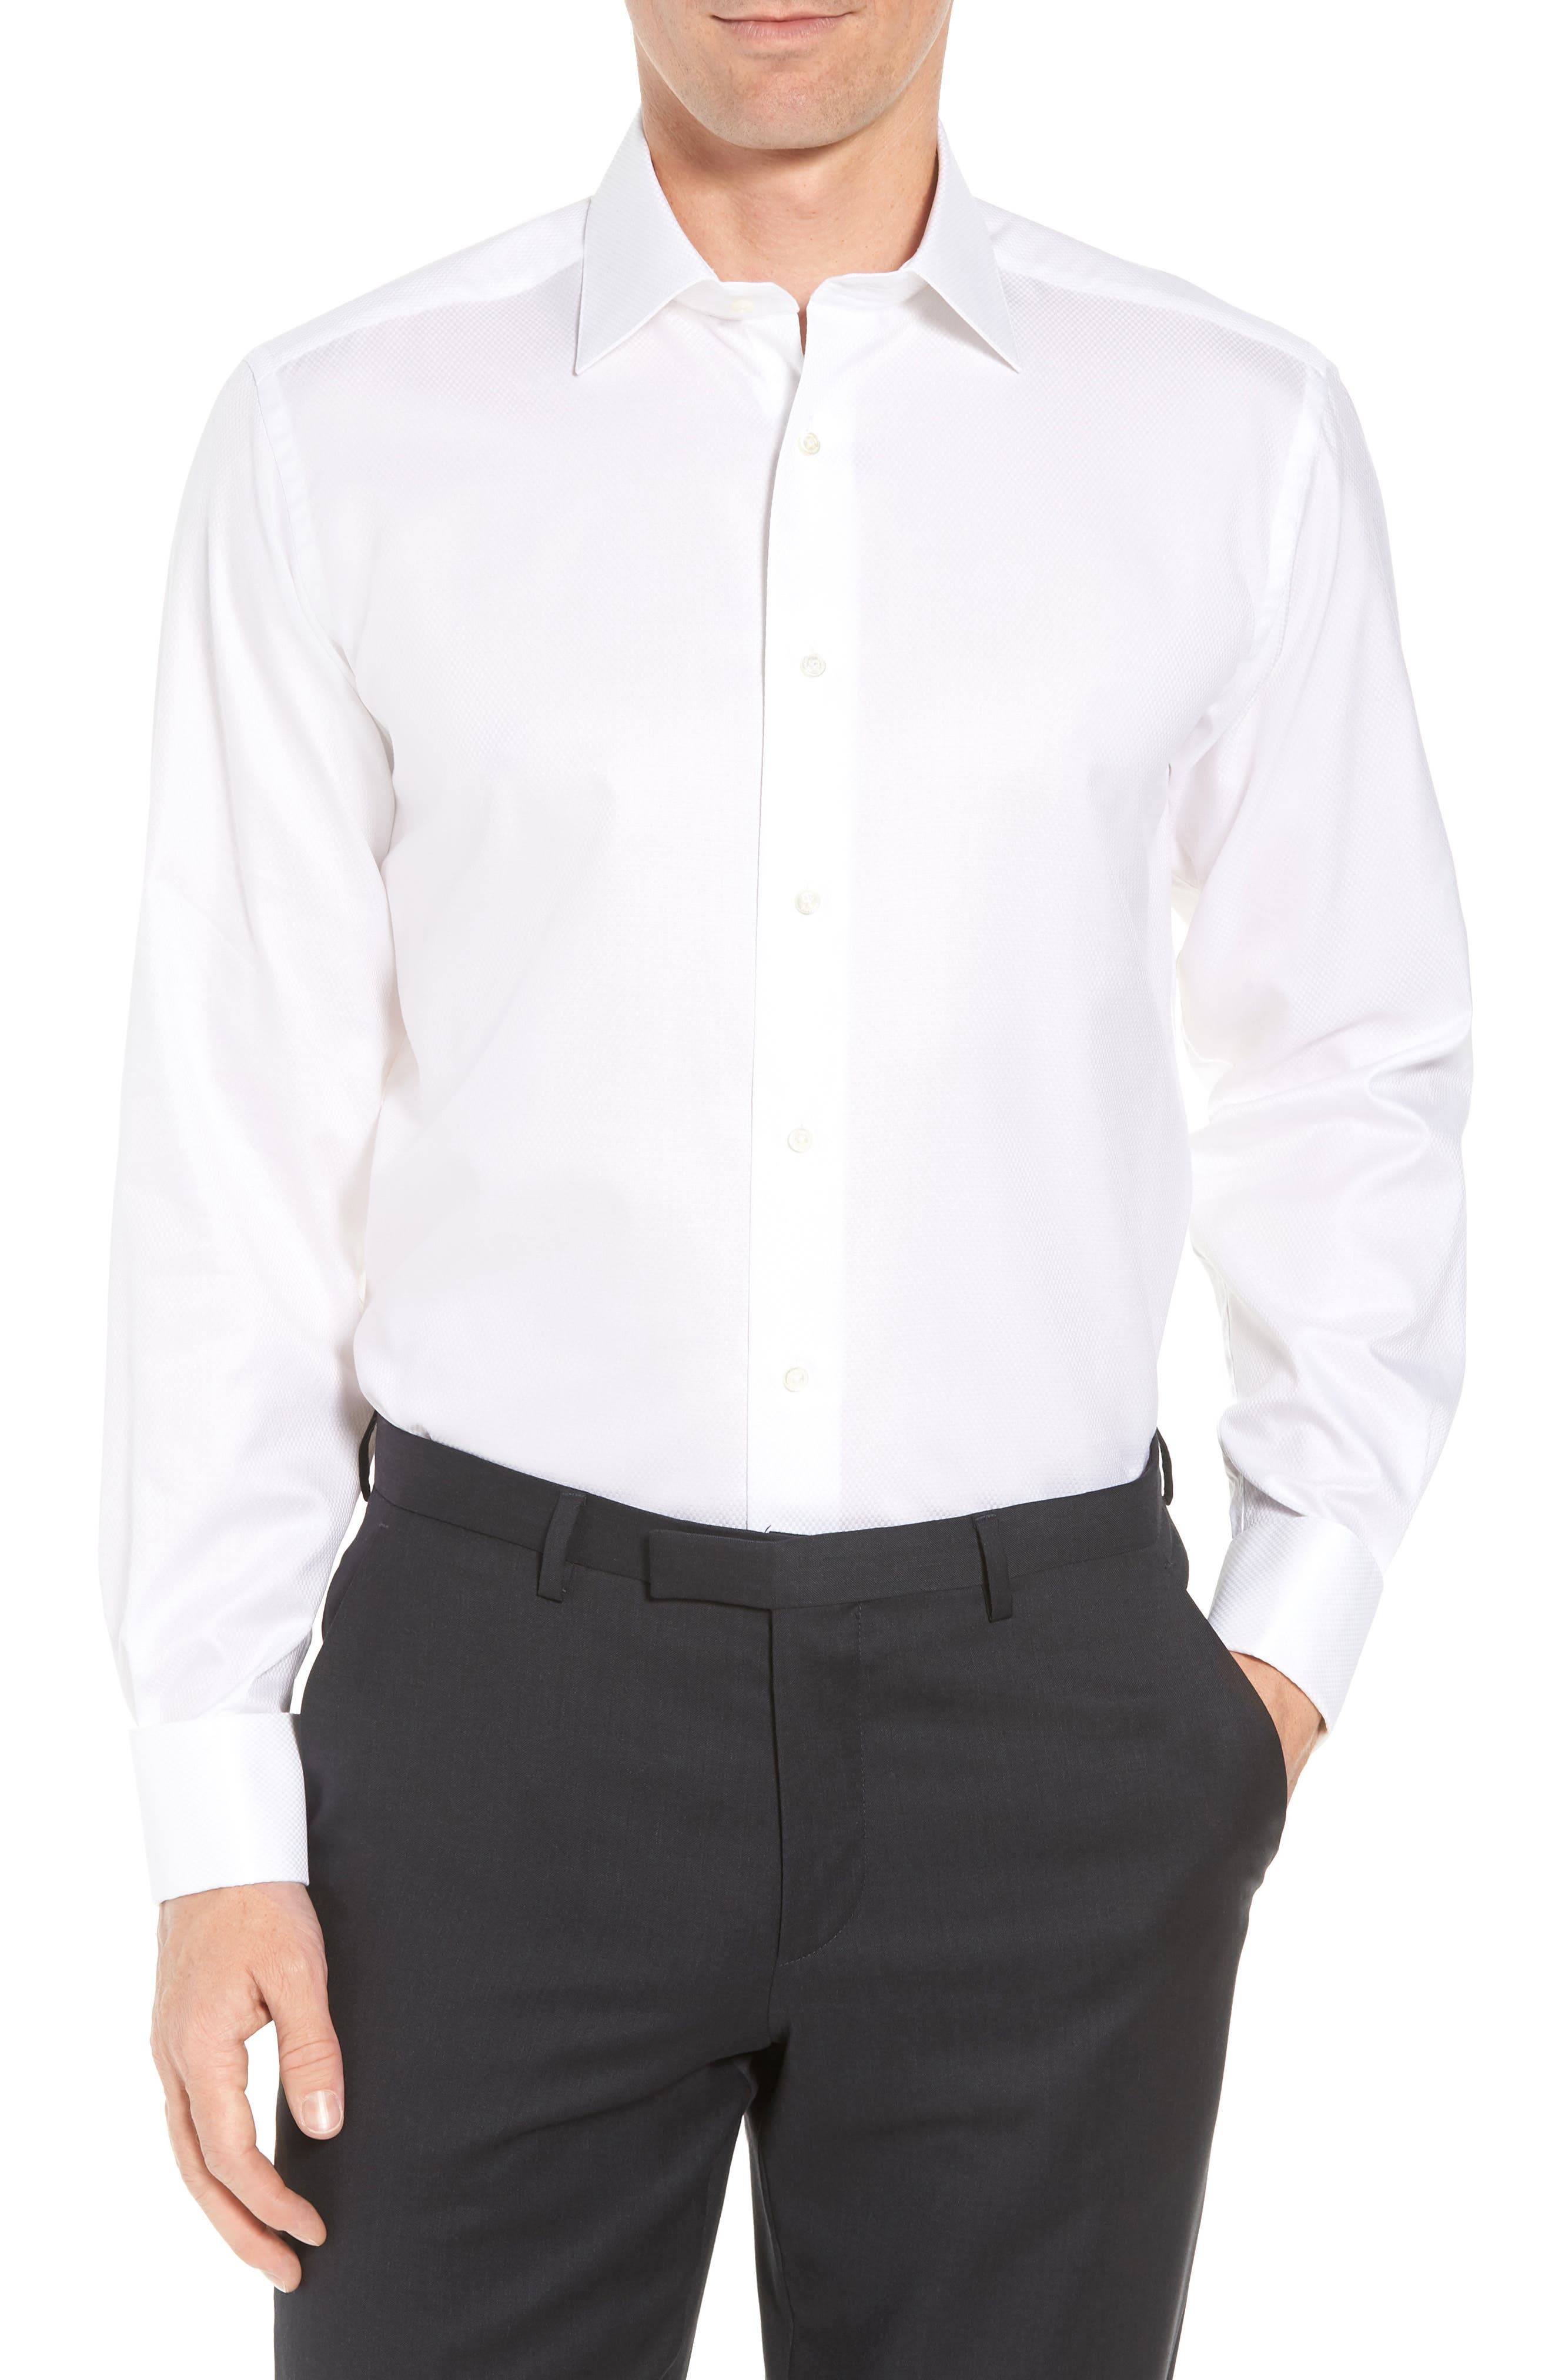 Regular Fit Solid French Cuff Tuxedo Shirt,                             Main thumbnail 1, color,                             White / White